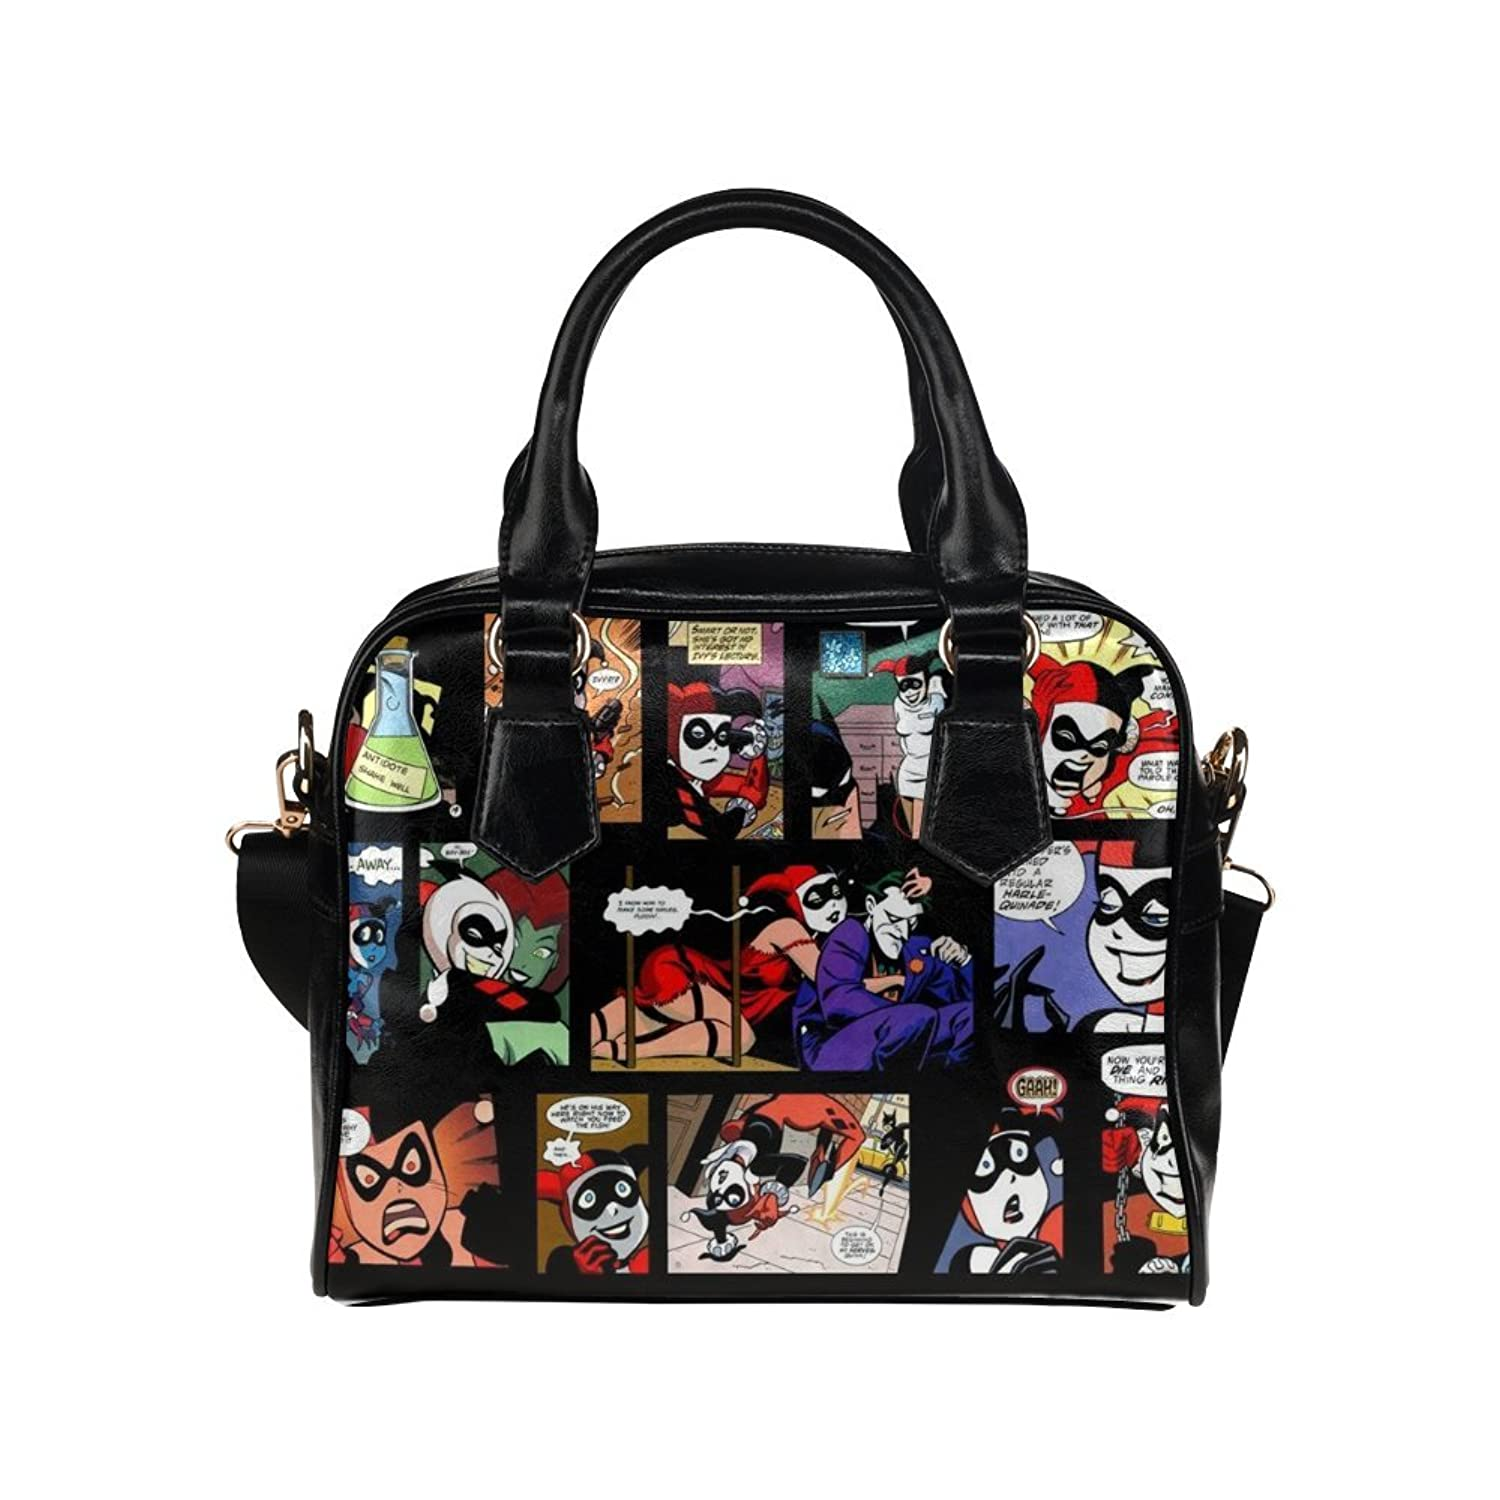 Angelinana Custom Women's Handbag Harley Quinn Fashion Shoulder Bag